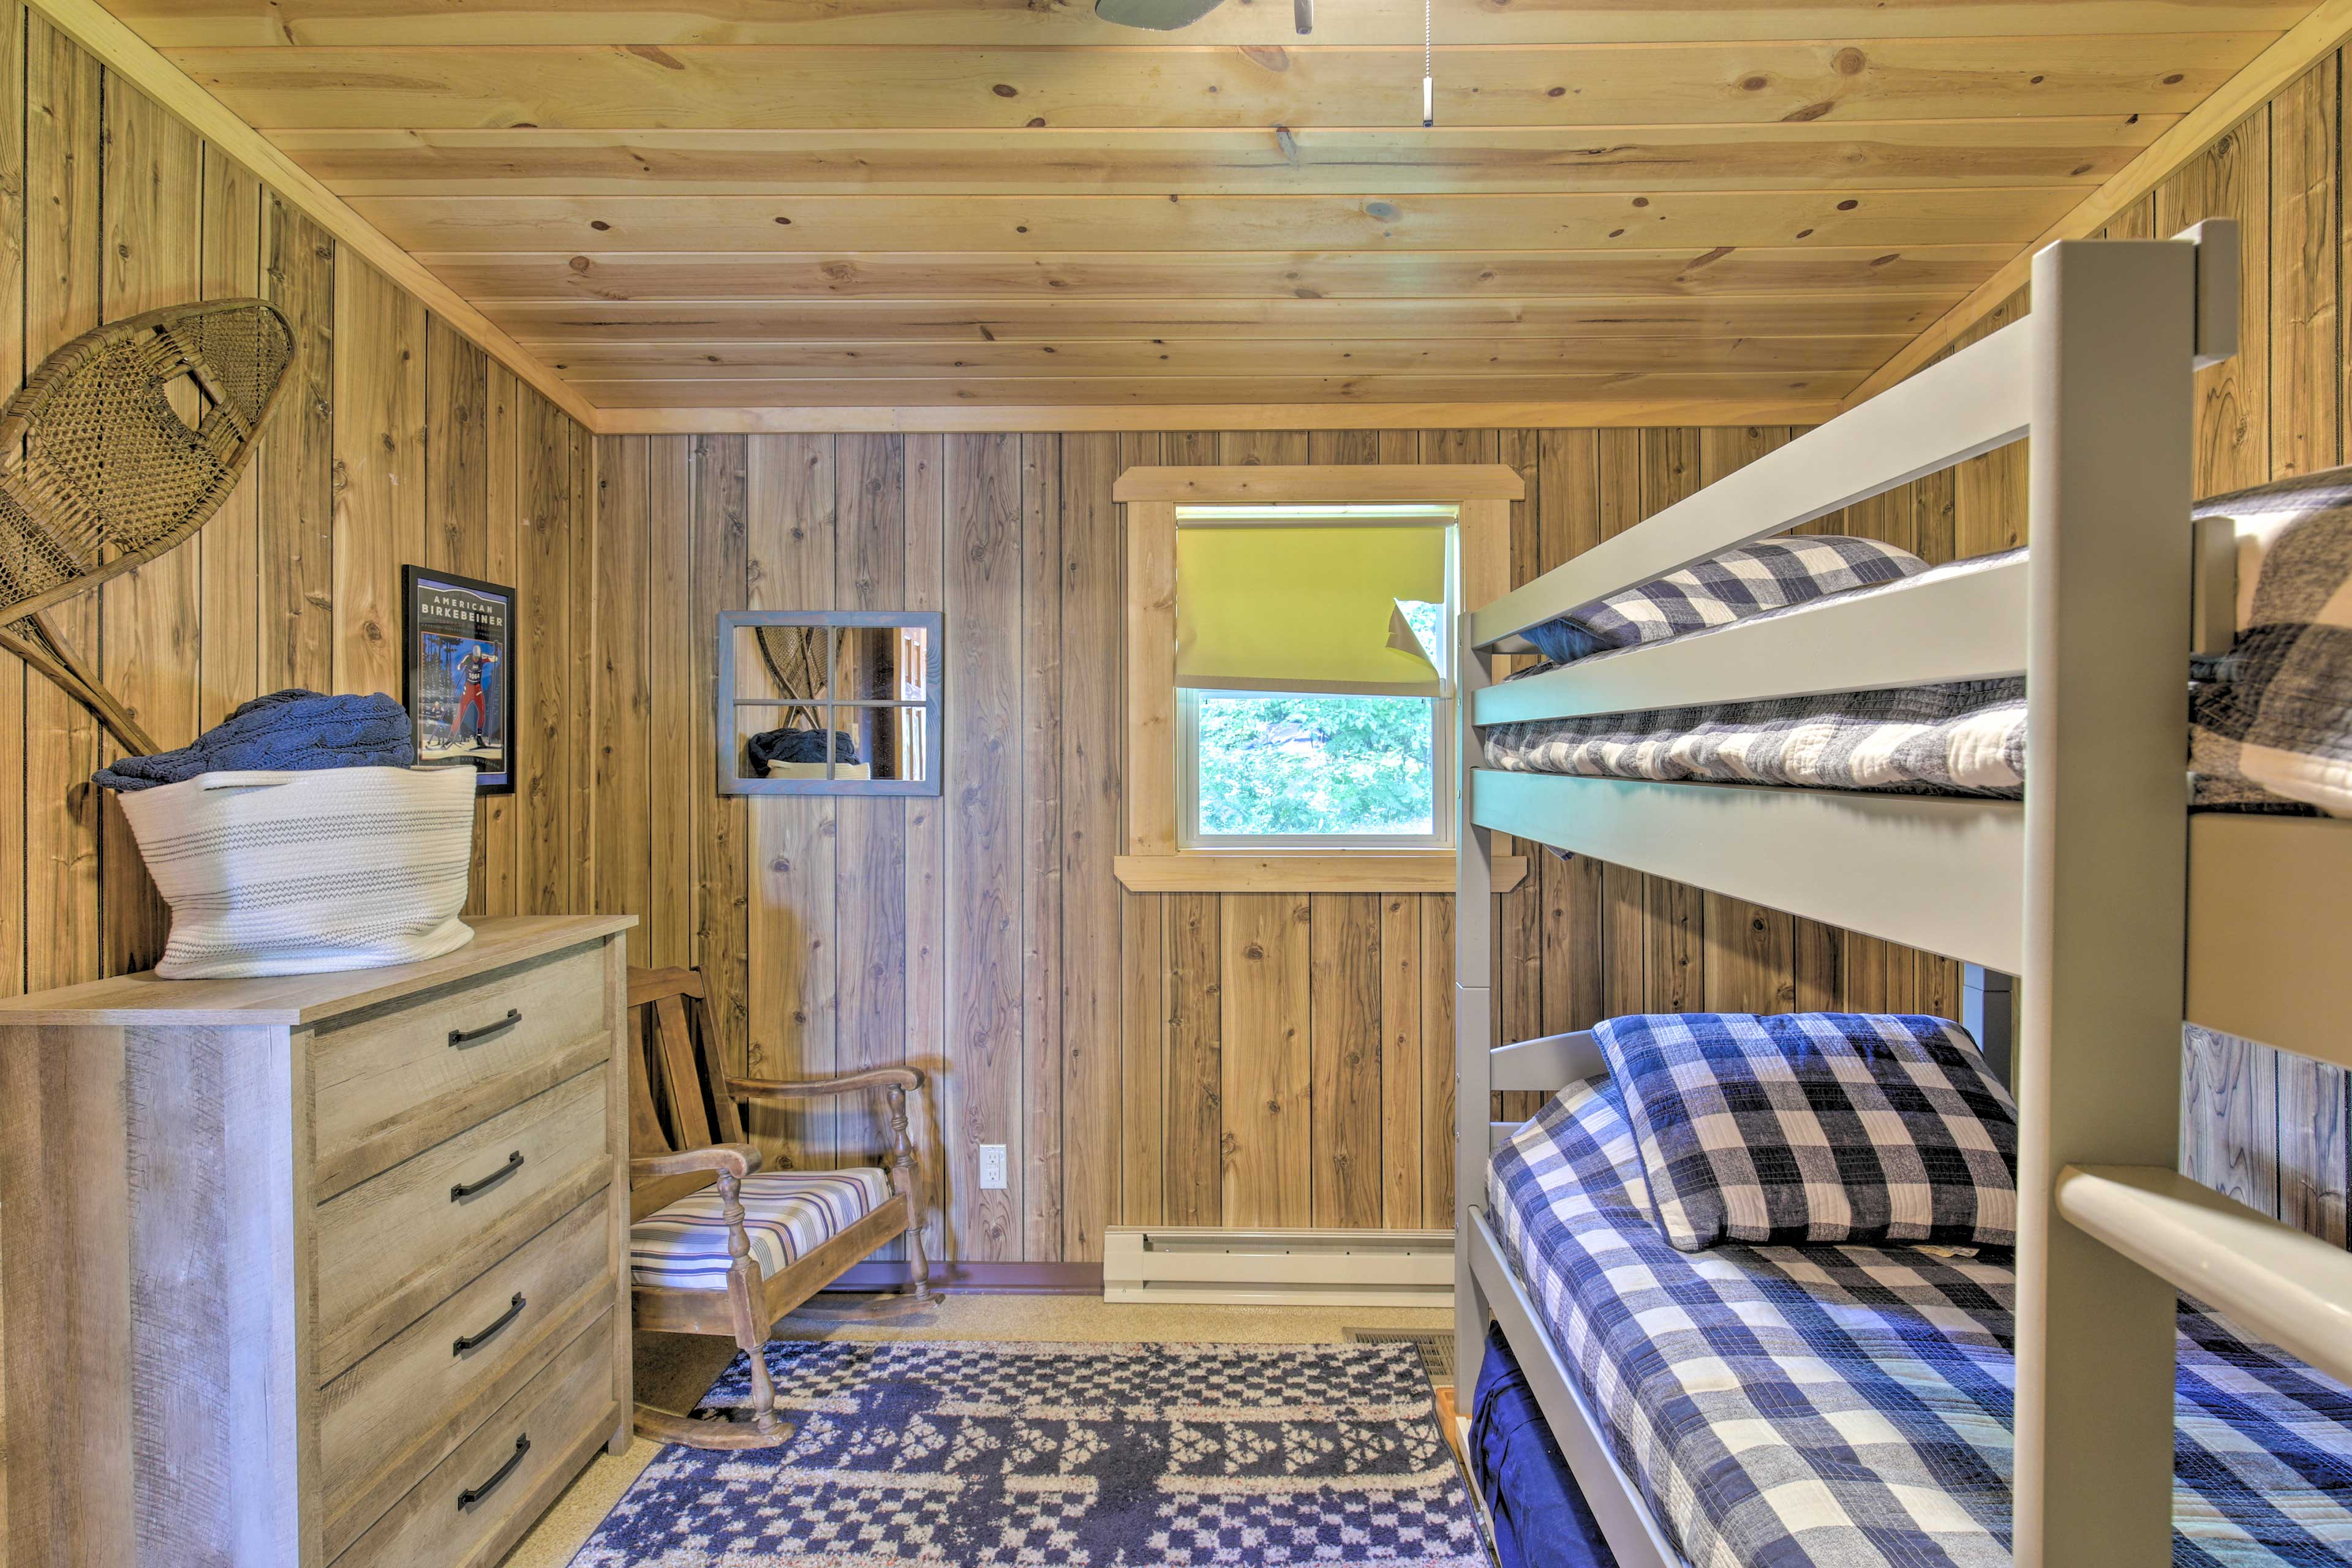 The second bedroom offers a twin bunk bed and a twin trundle.